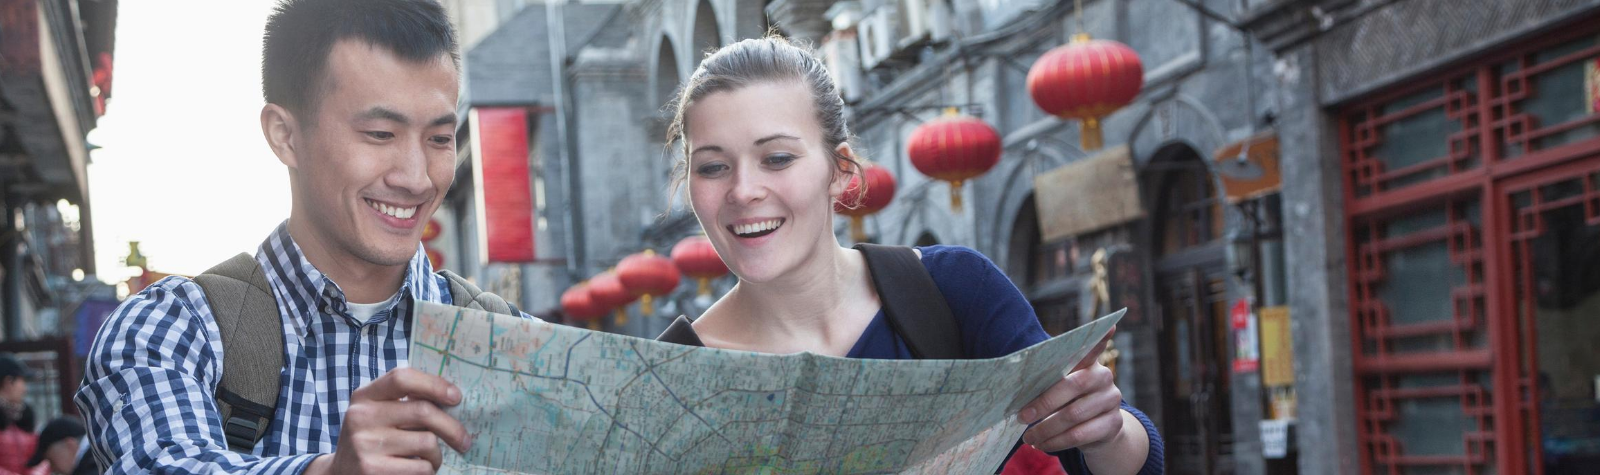 Things You Should Know Before Travelling to China